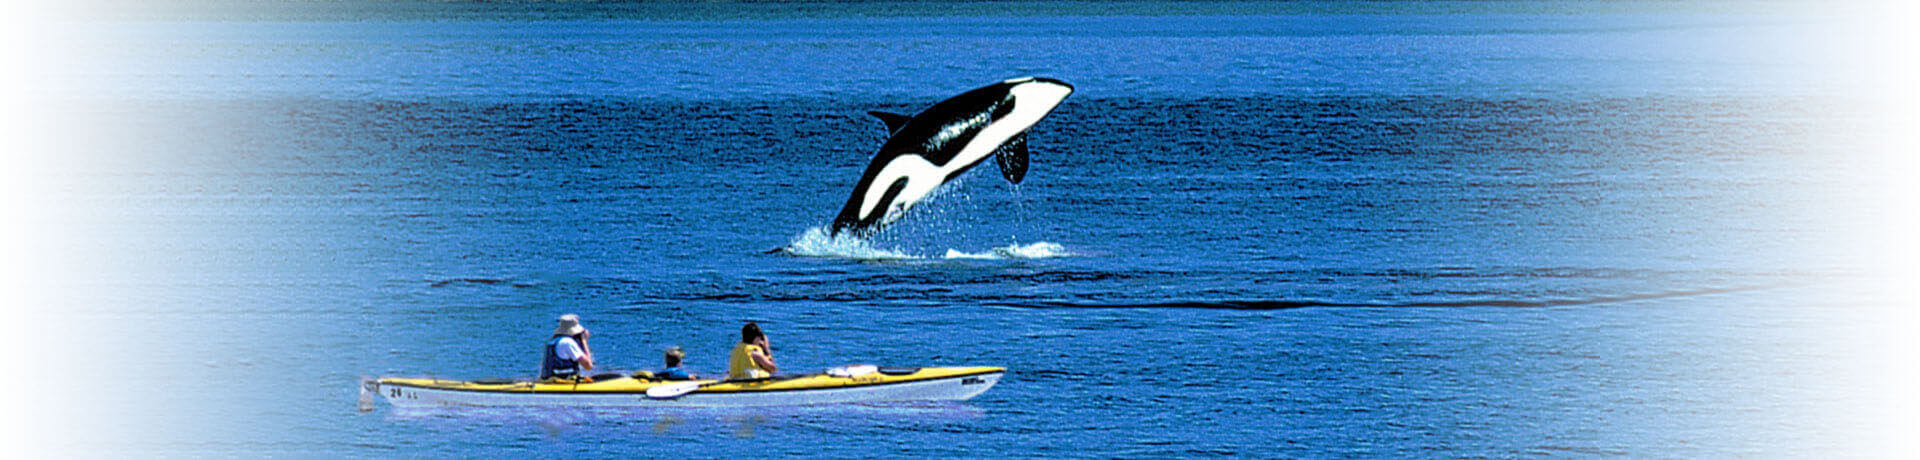 Breach-Orca-Kayak-Washington-1920x460-4